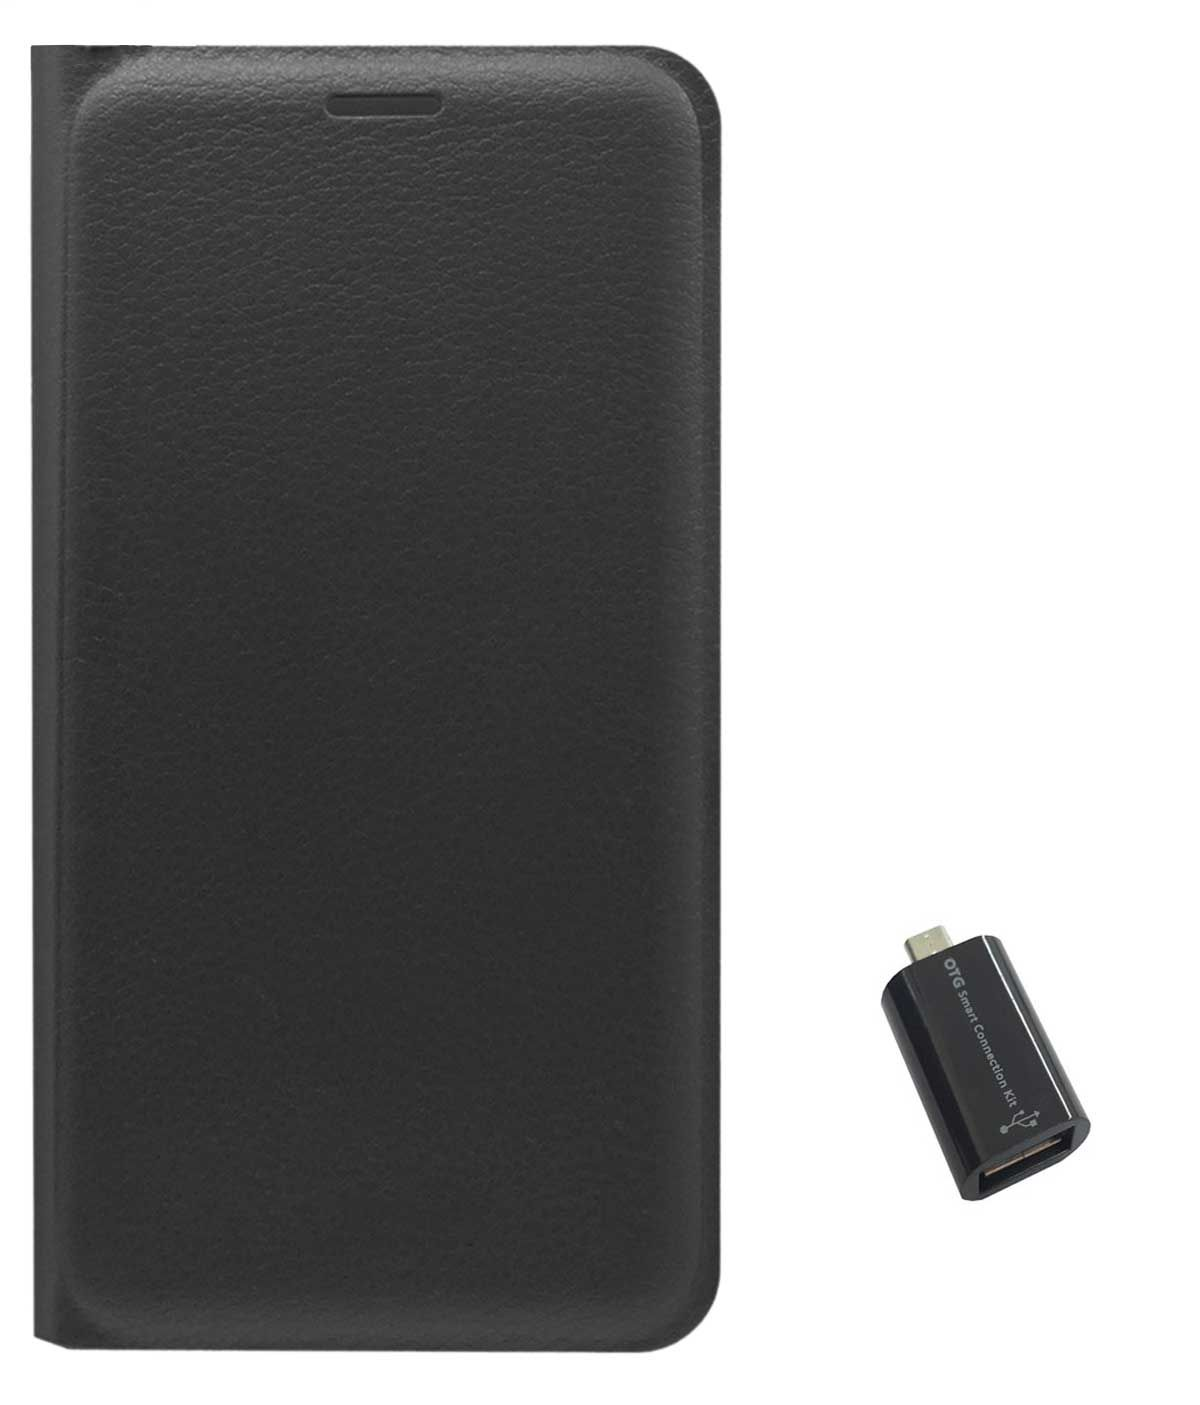 TBZ PU Leather Flip Cover Case for Redmi 3S with Micro USB OTG Adapter -Black